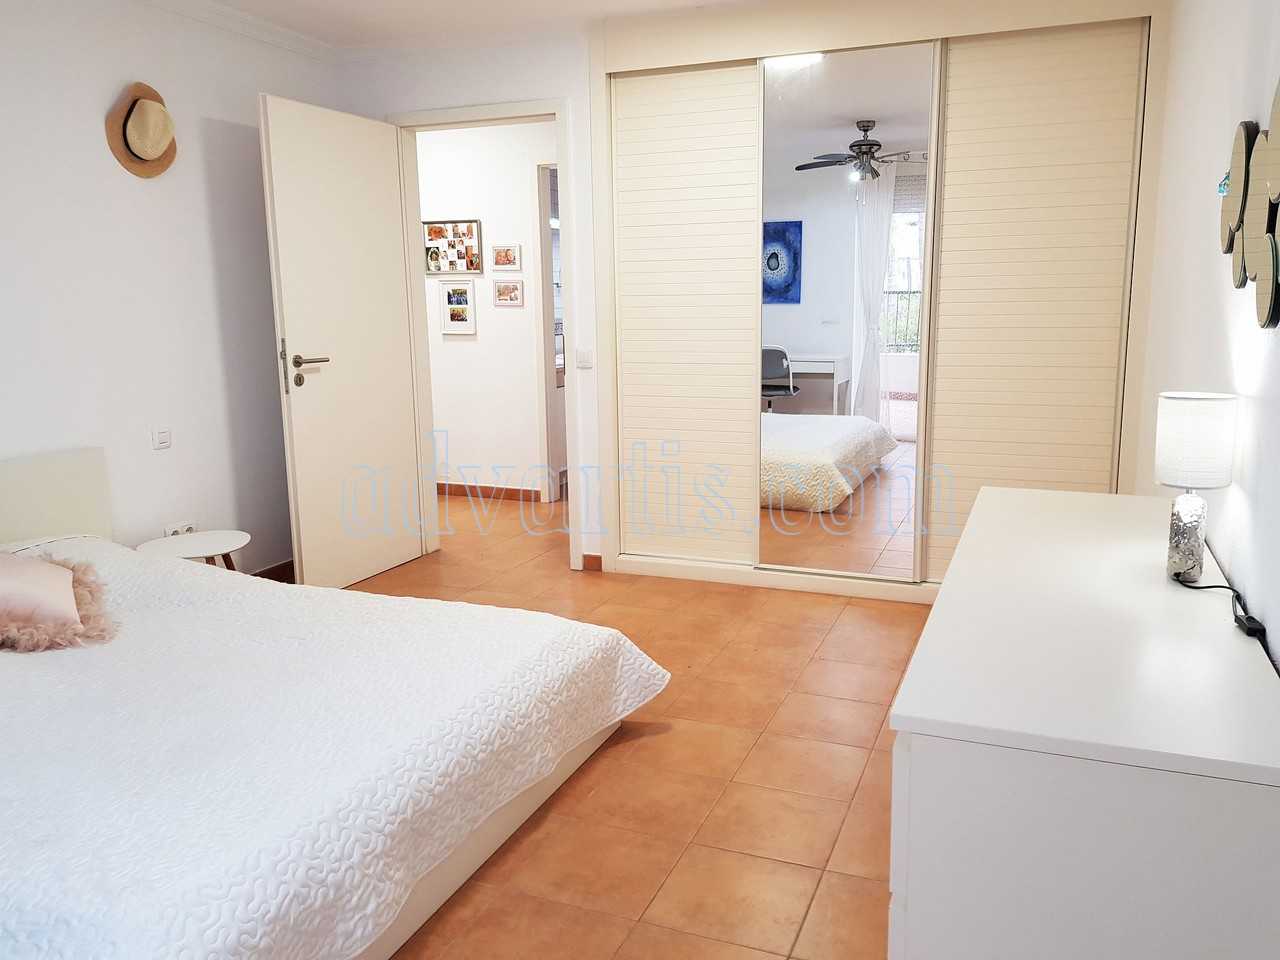 1-bedroom-apartment-for-sale-los-cristianos-tenerife-spain-38650-0920-18